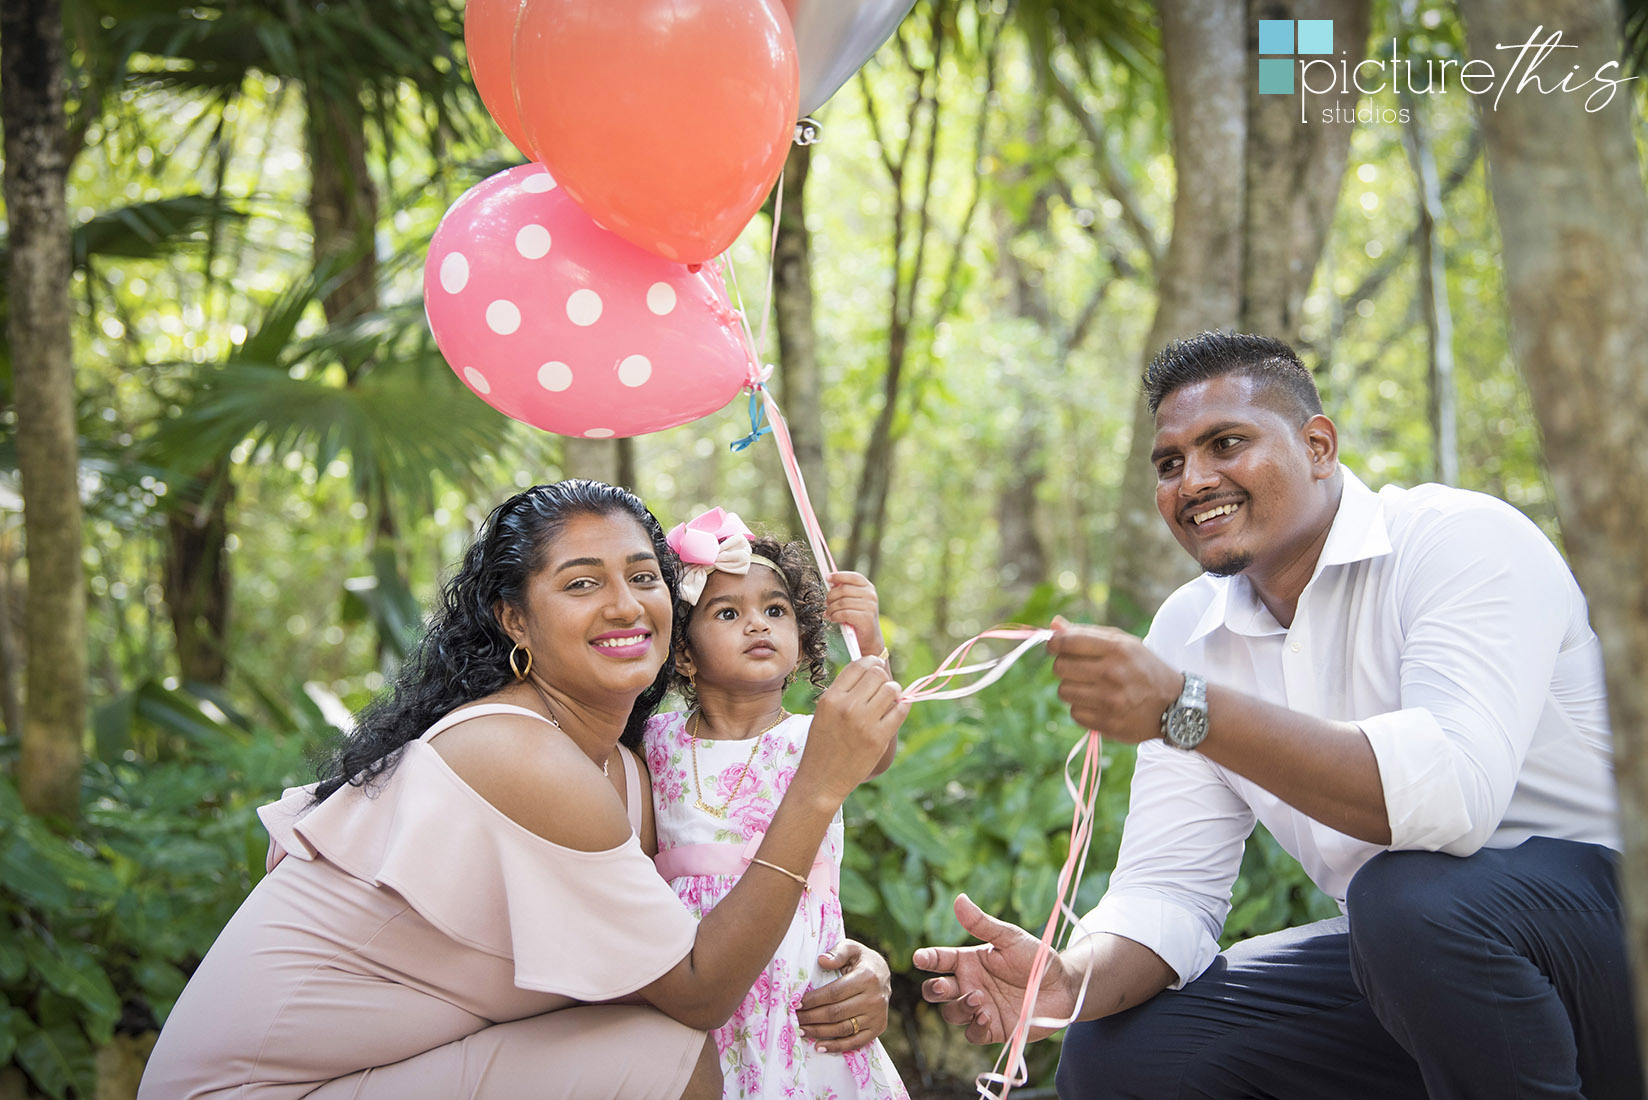 This beautiful little two year old celebrated with family portraits at The Cayman Islands Botanical Park by Heather Holt Photography with Picture This Studios